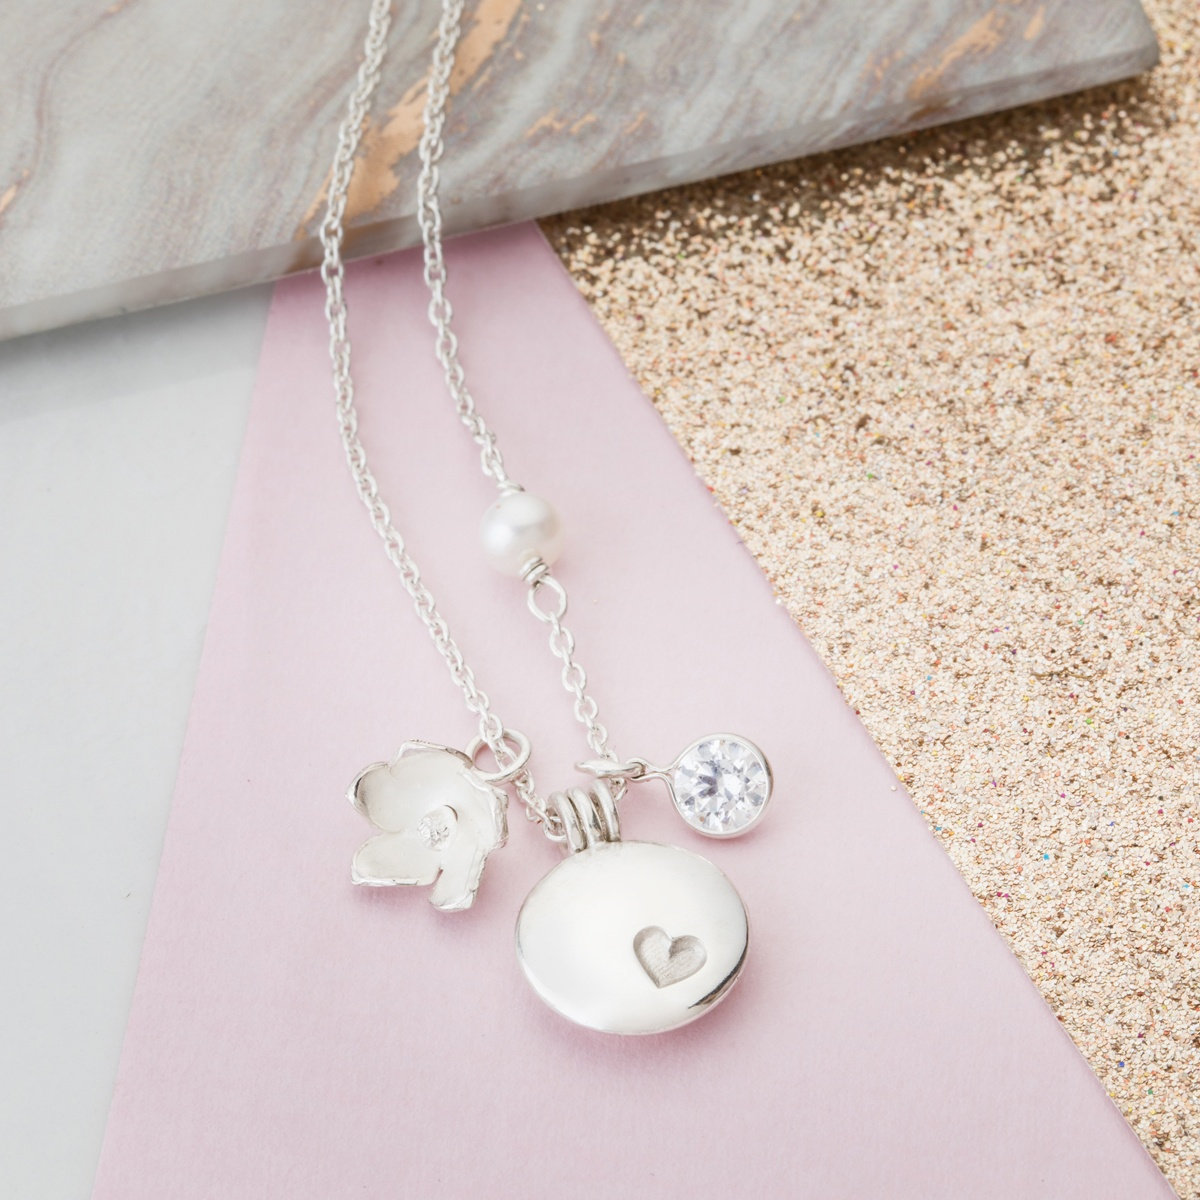 pendants jewelry clover necklace pendant lucky product luck double charm and good nekclace hugerect leaf